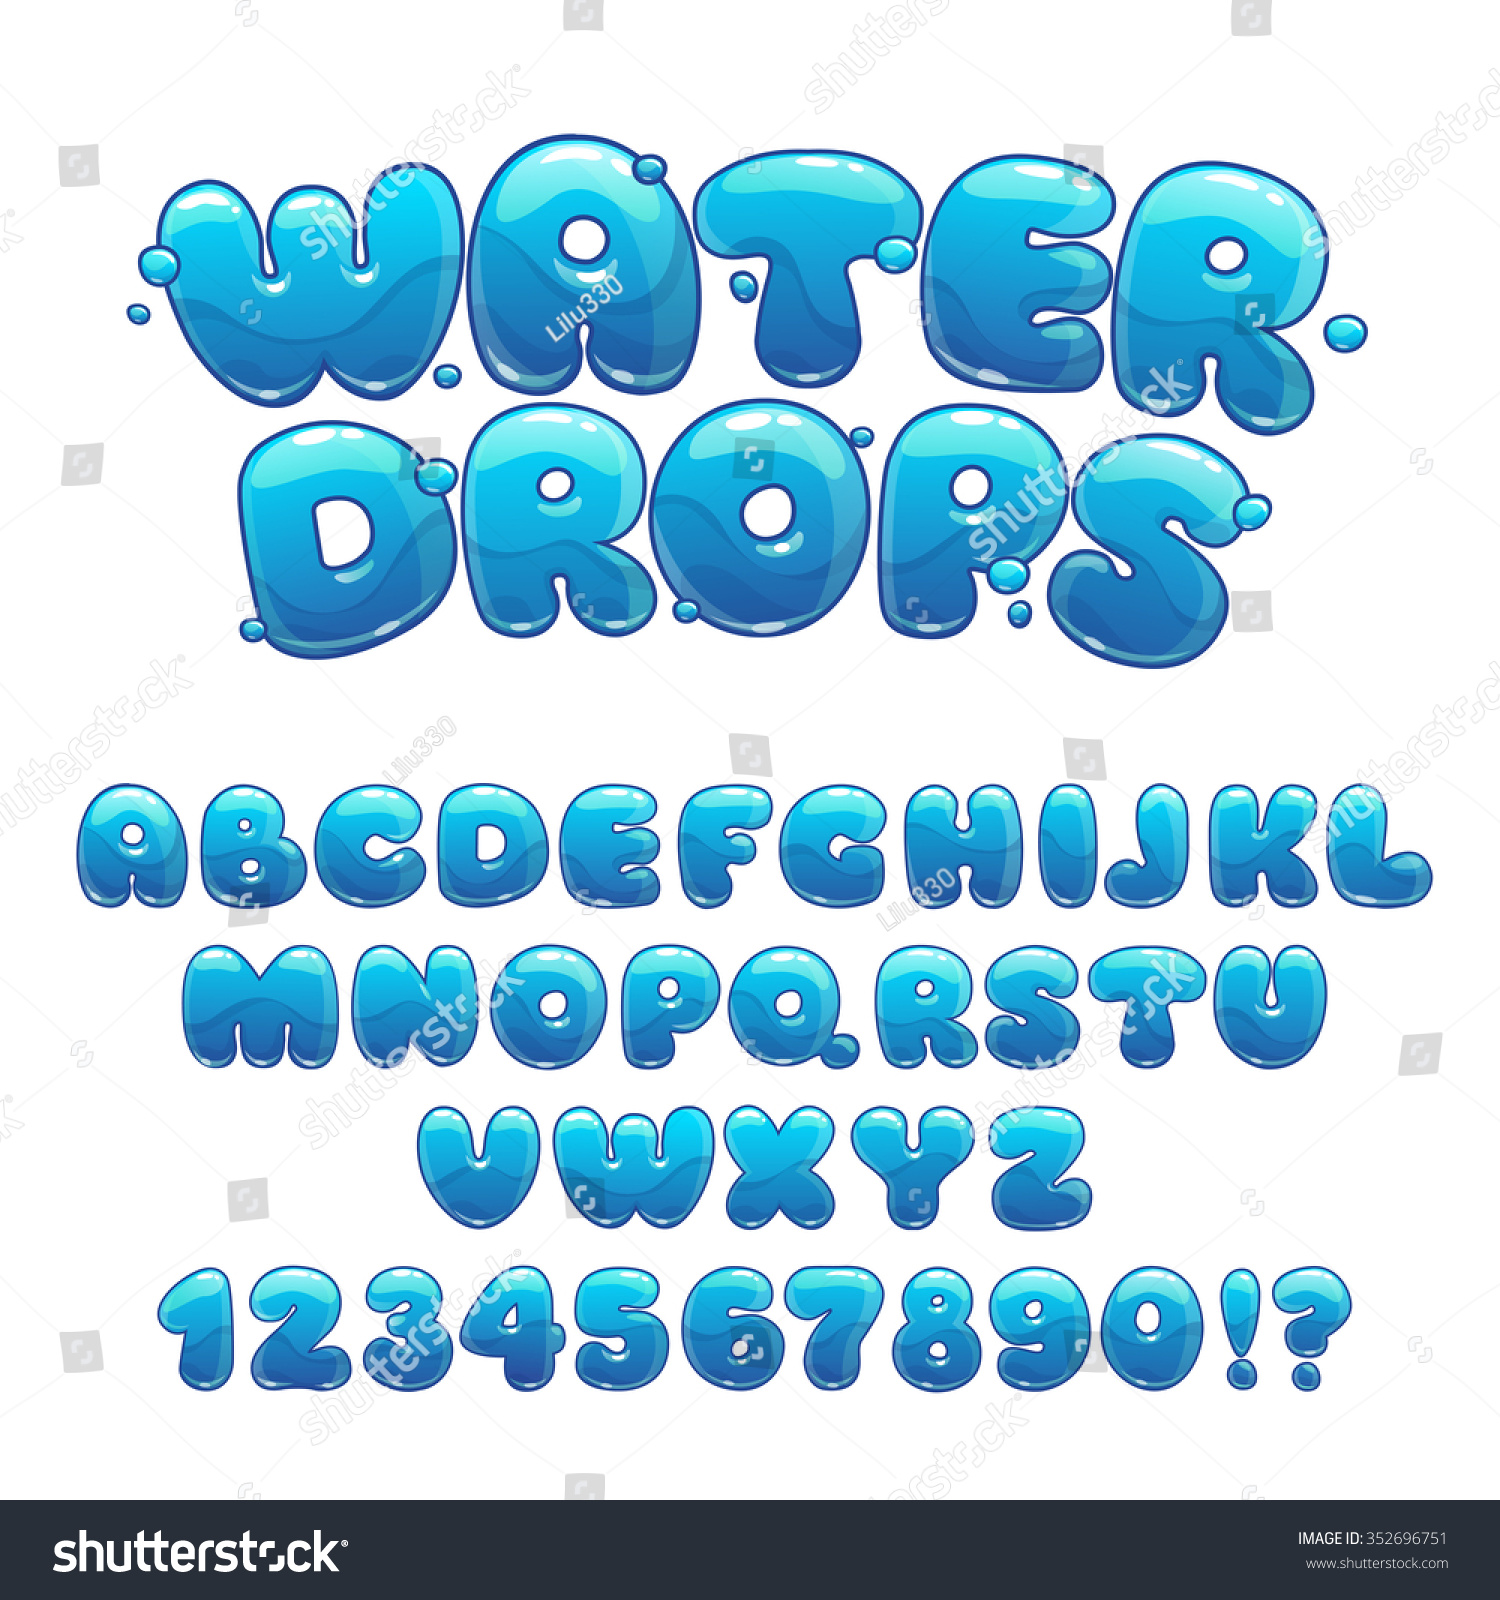 Water Funny Pictures Stock Vector Cartoon Water Drops Font Funny Blue